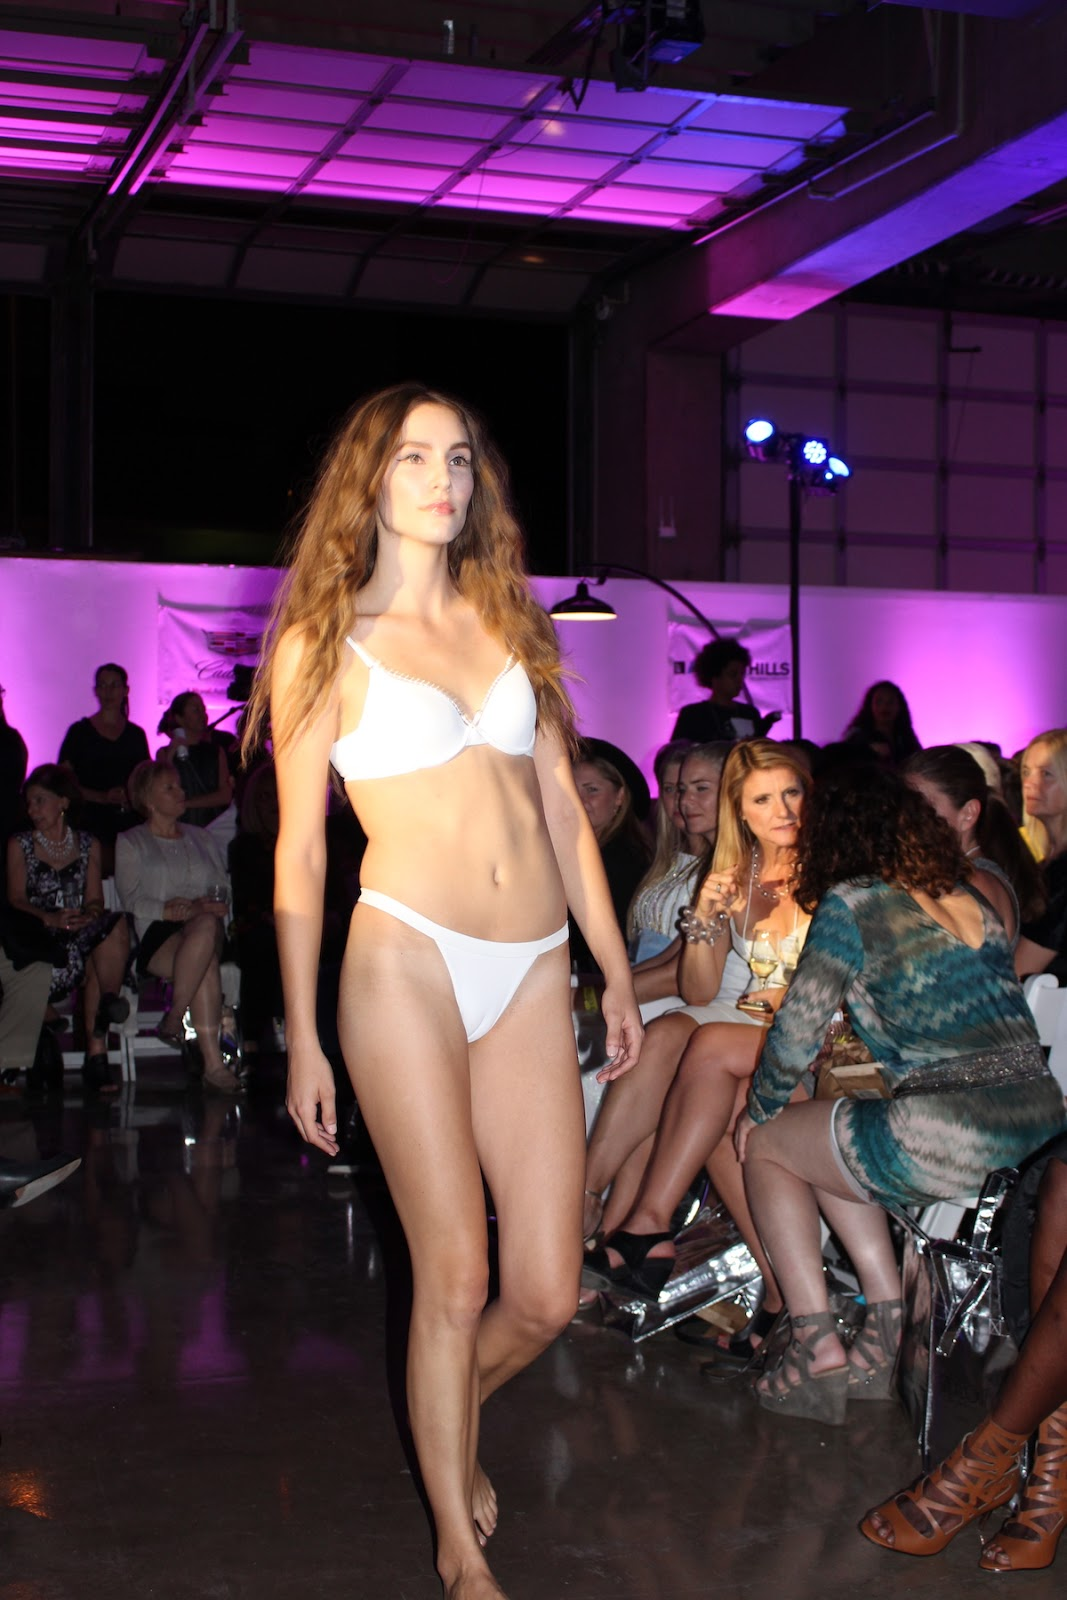 This model is strutting down the runway in a beautiful white bikini.